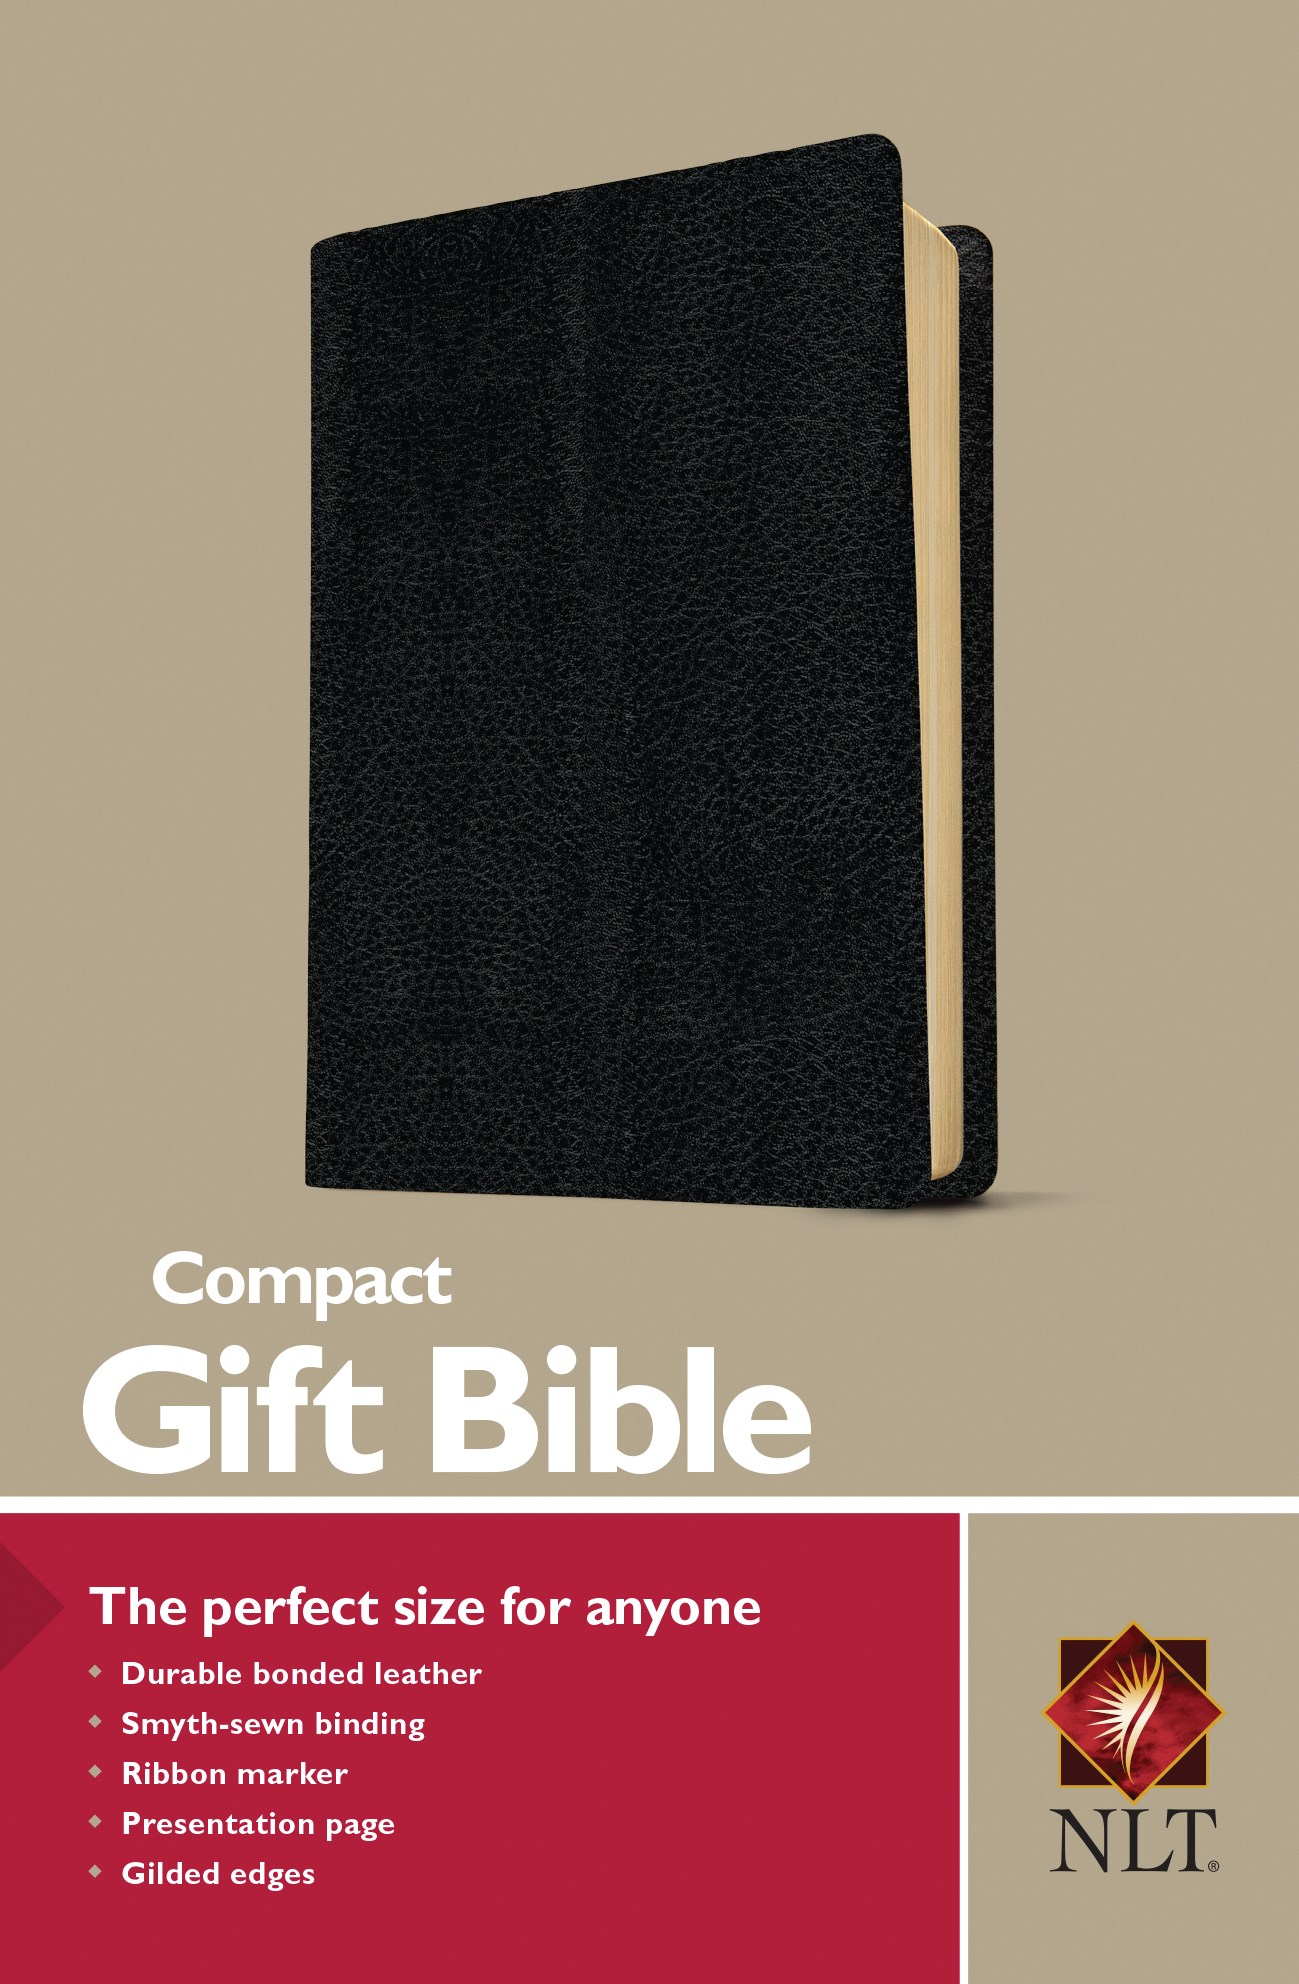 NLT Compact Gift Bible-Black Bonded Leather